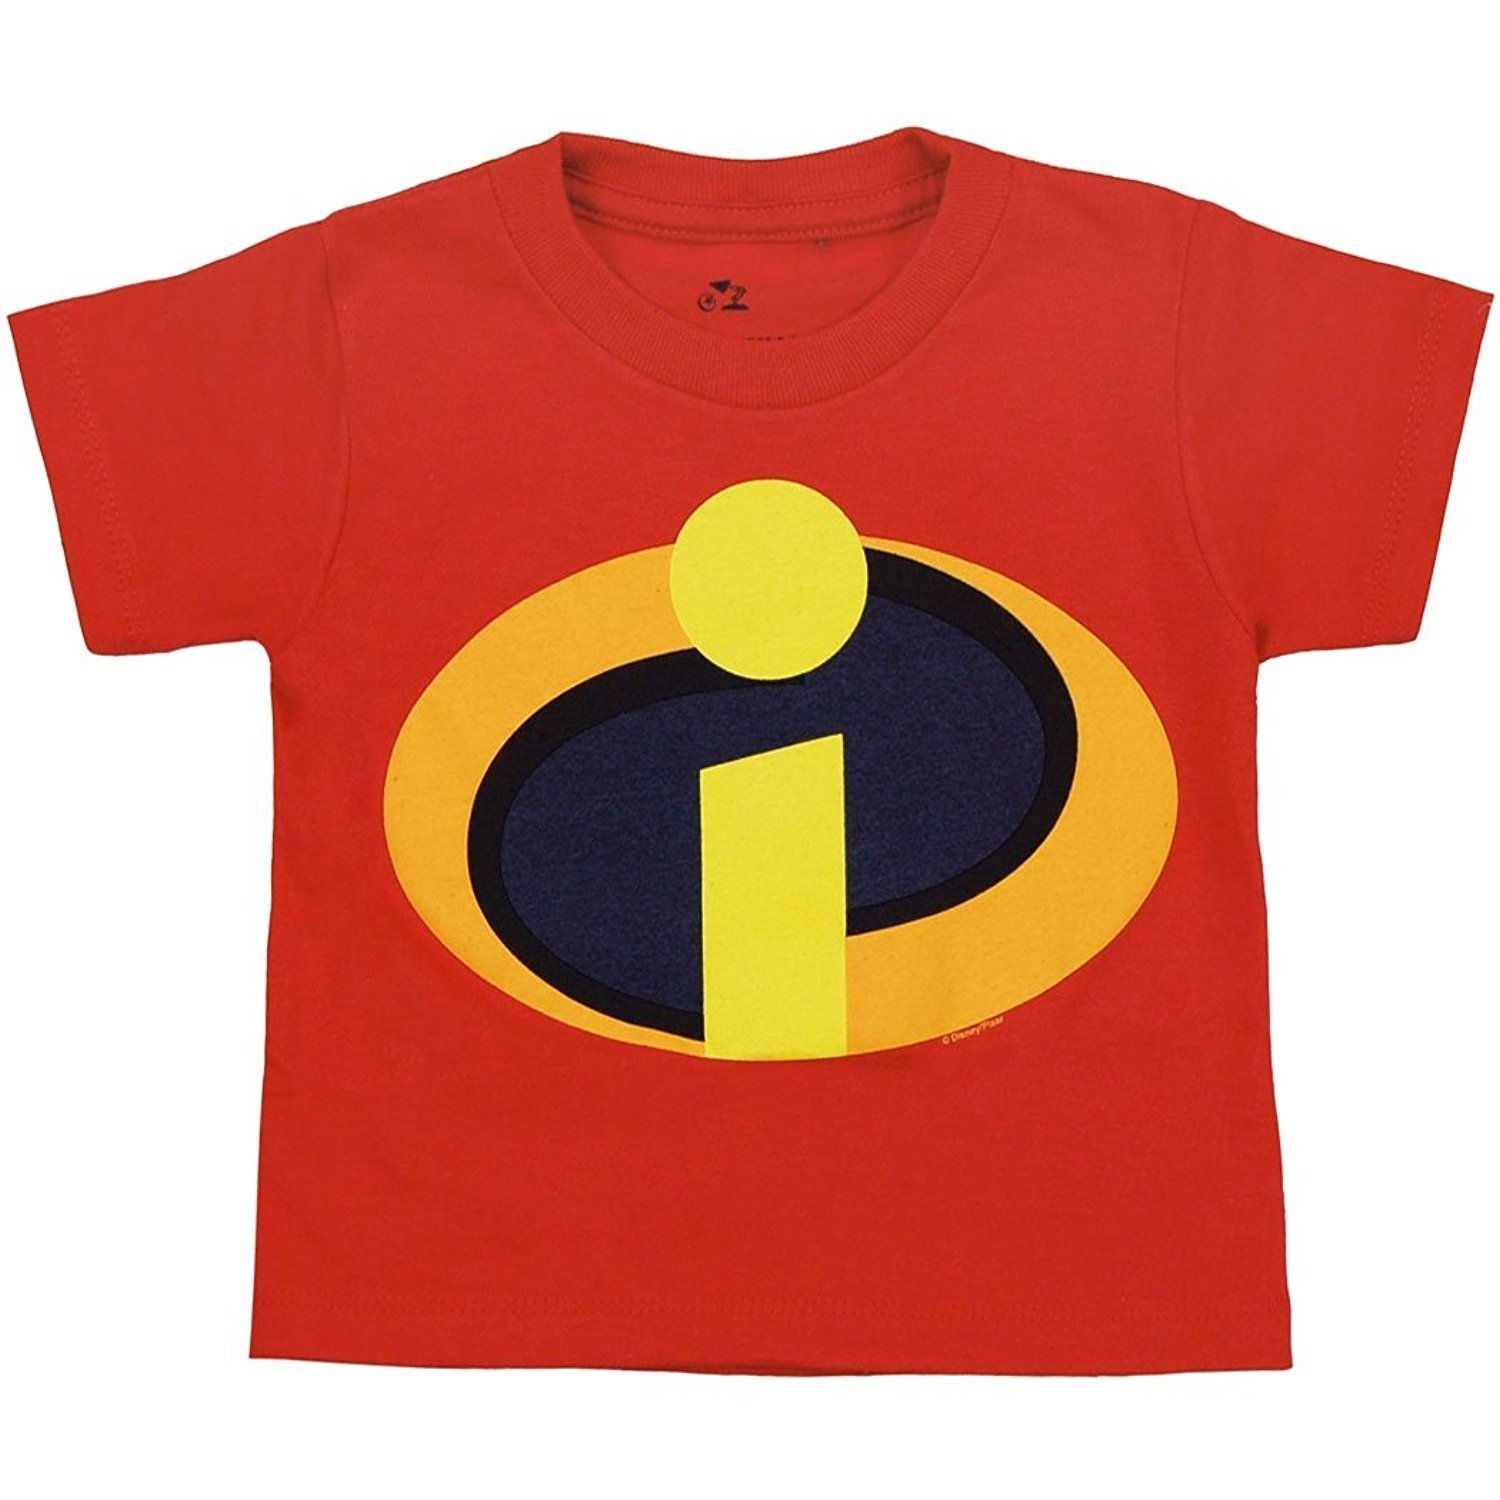 Disney The Incredibles Movie Symbol Toddler Juvy T-Shirt Blue Star